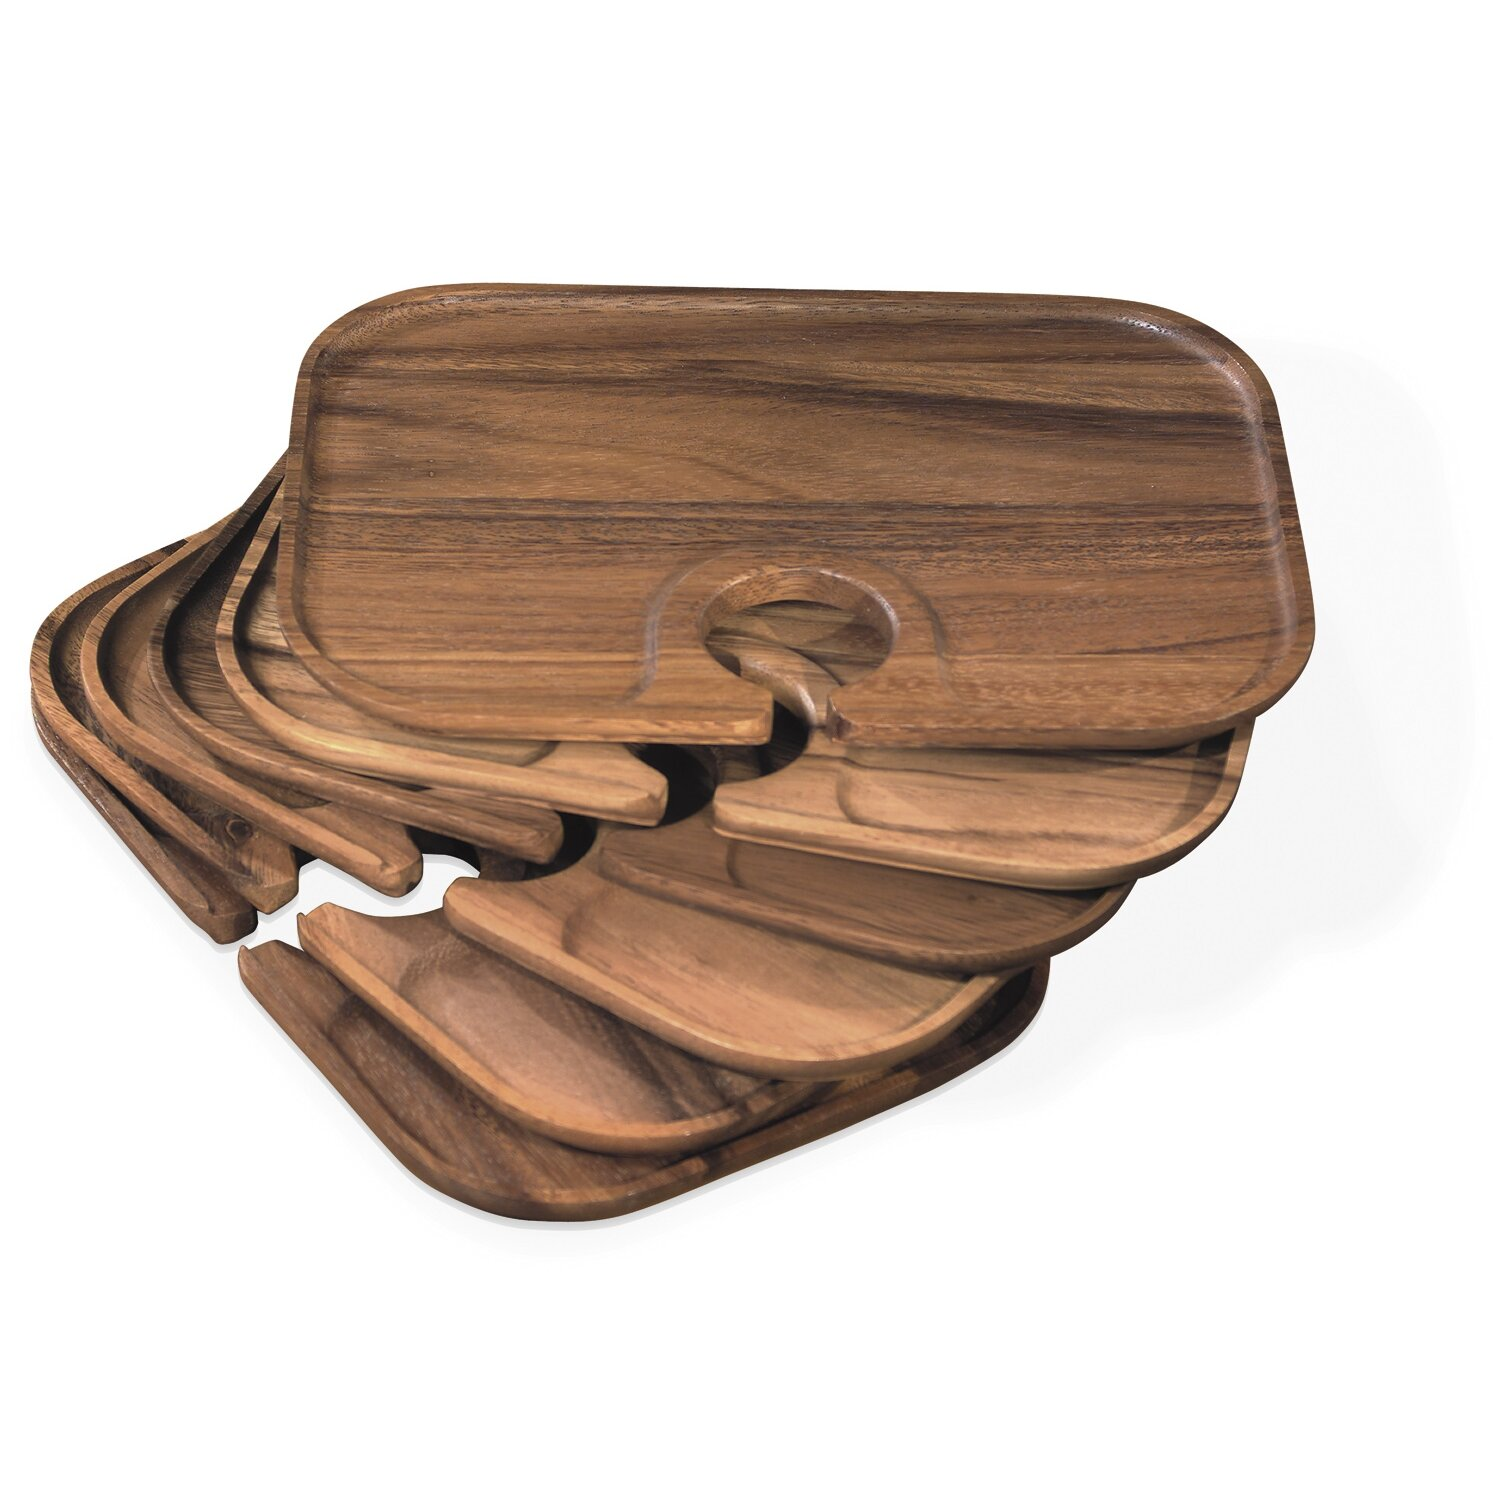 Fox run craftsmen ironwood gourmet canape serving tray for Canape serving platters